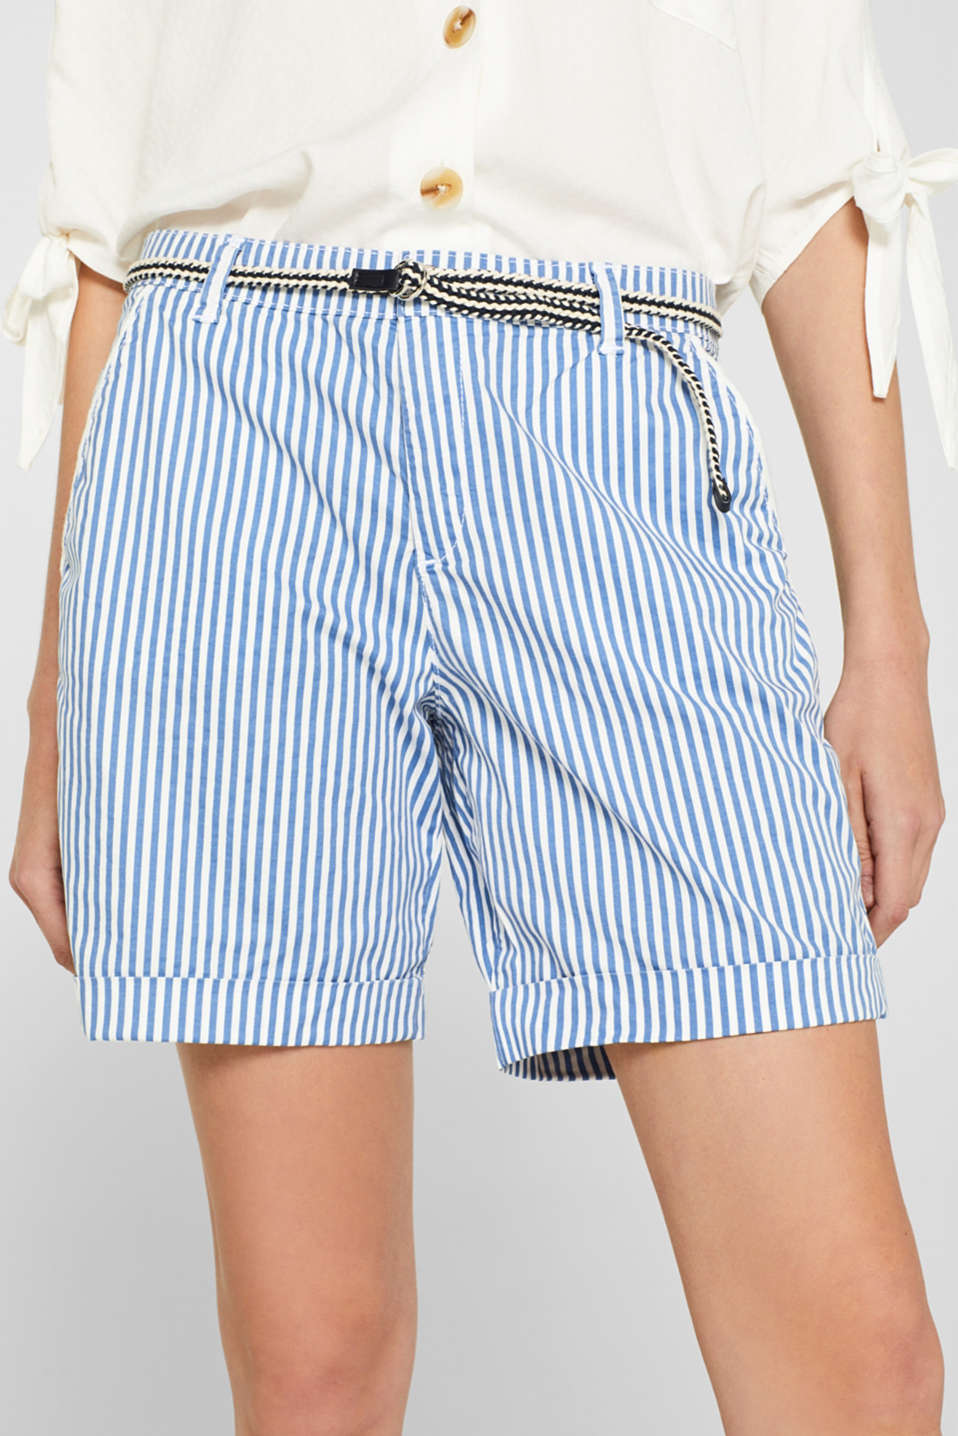 Striped stretch cotton shorts with a belt, BLUE, detail image number 2